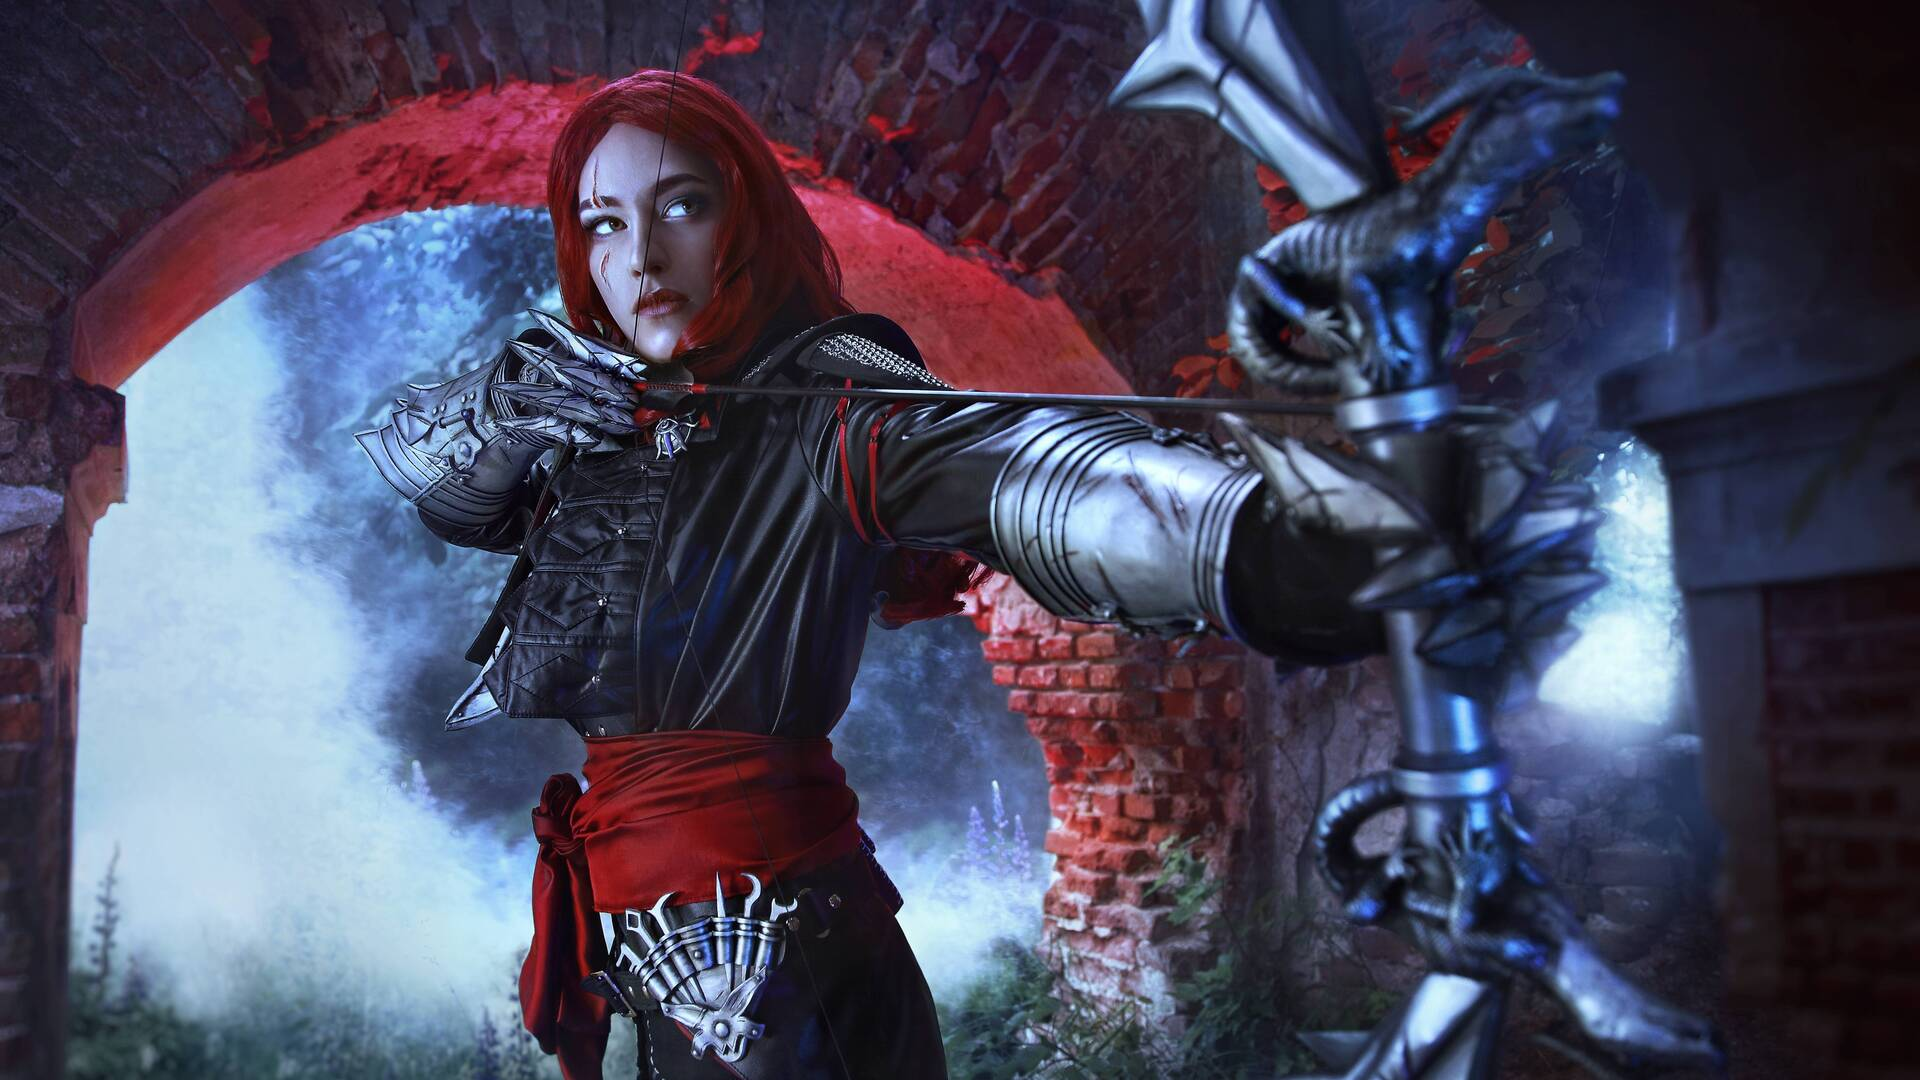 1920x1080 Dragon Age Inquisition Cosplay Laptop Full Hd 1080p Hd